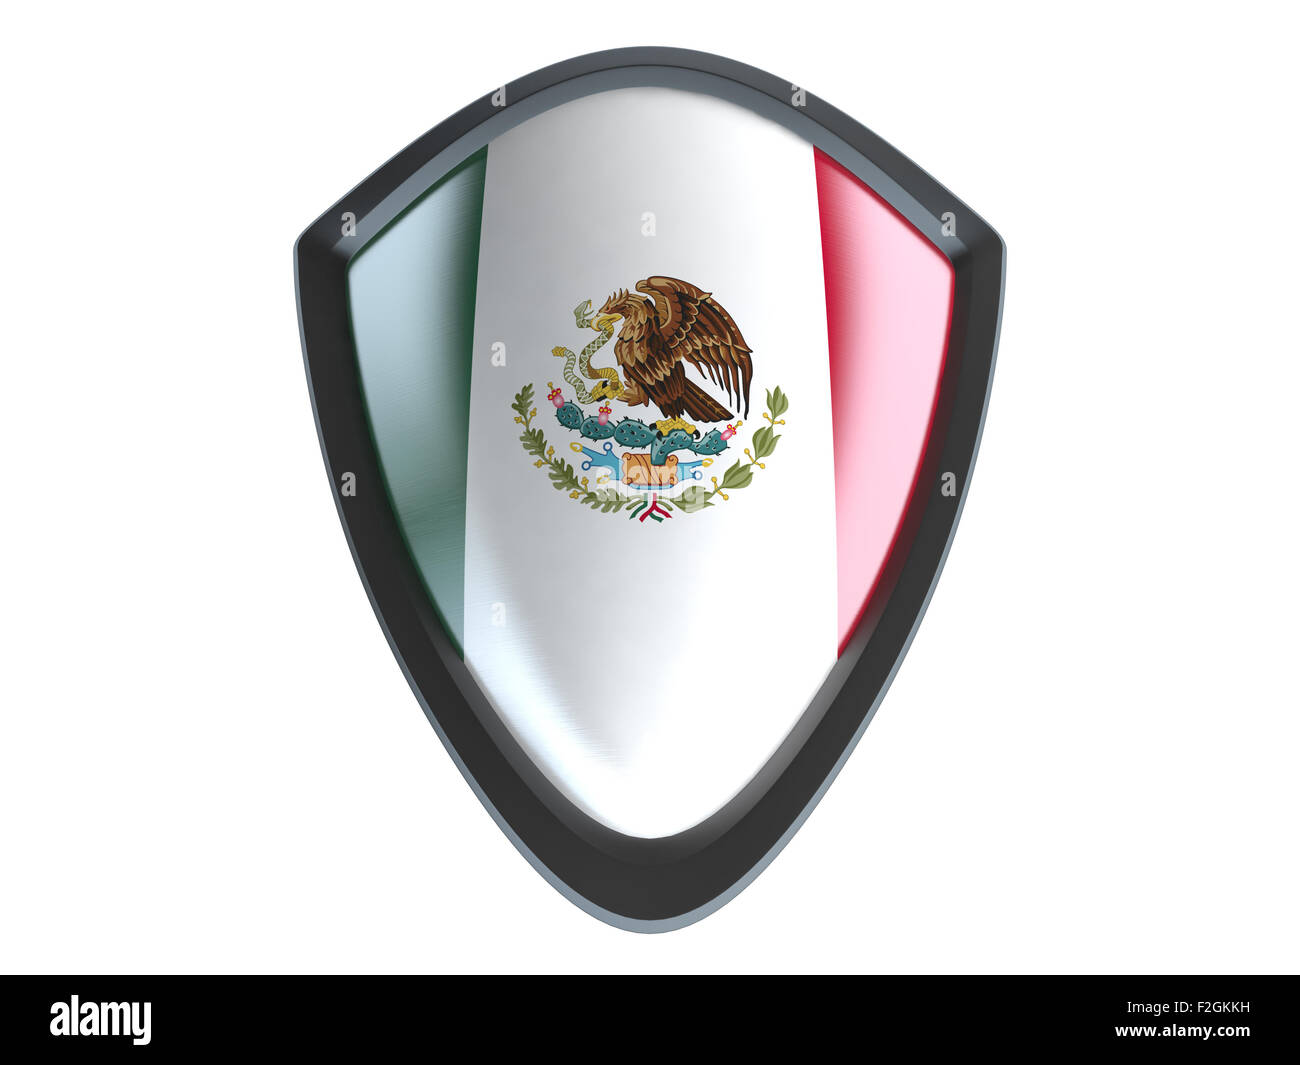 Mexico flag on metal shield isolate on white background. - Stock Image